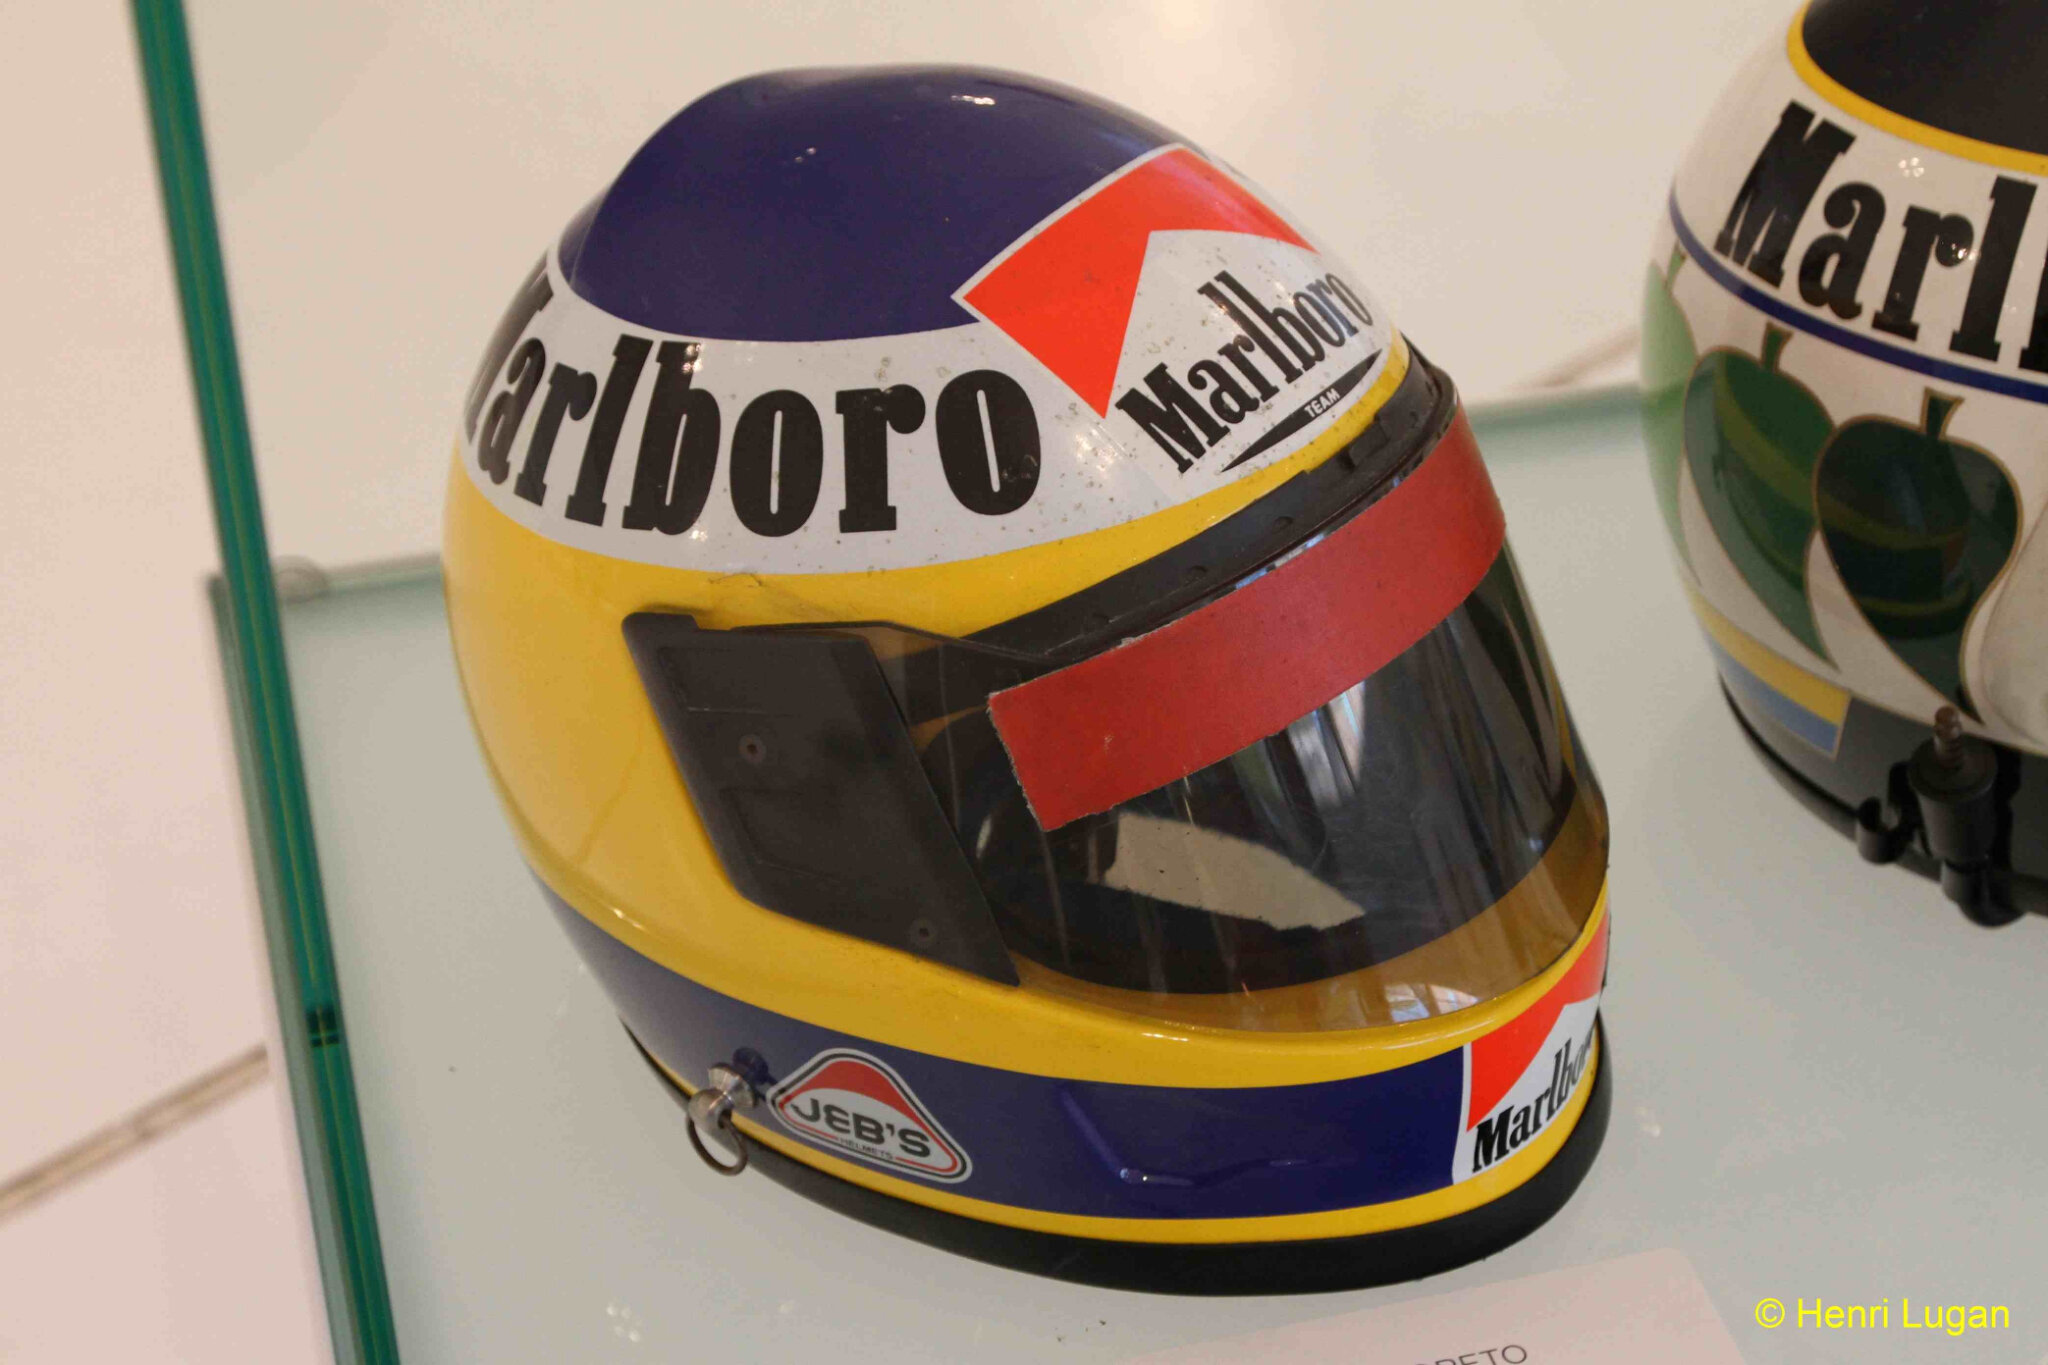 Casque ALBORETTO Michele - 1988 HL_GF